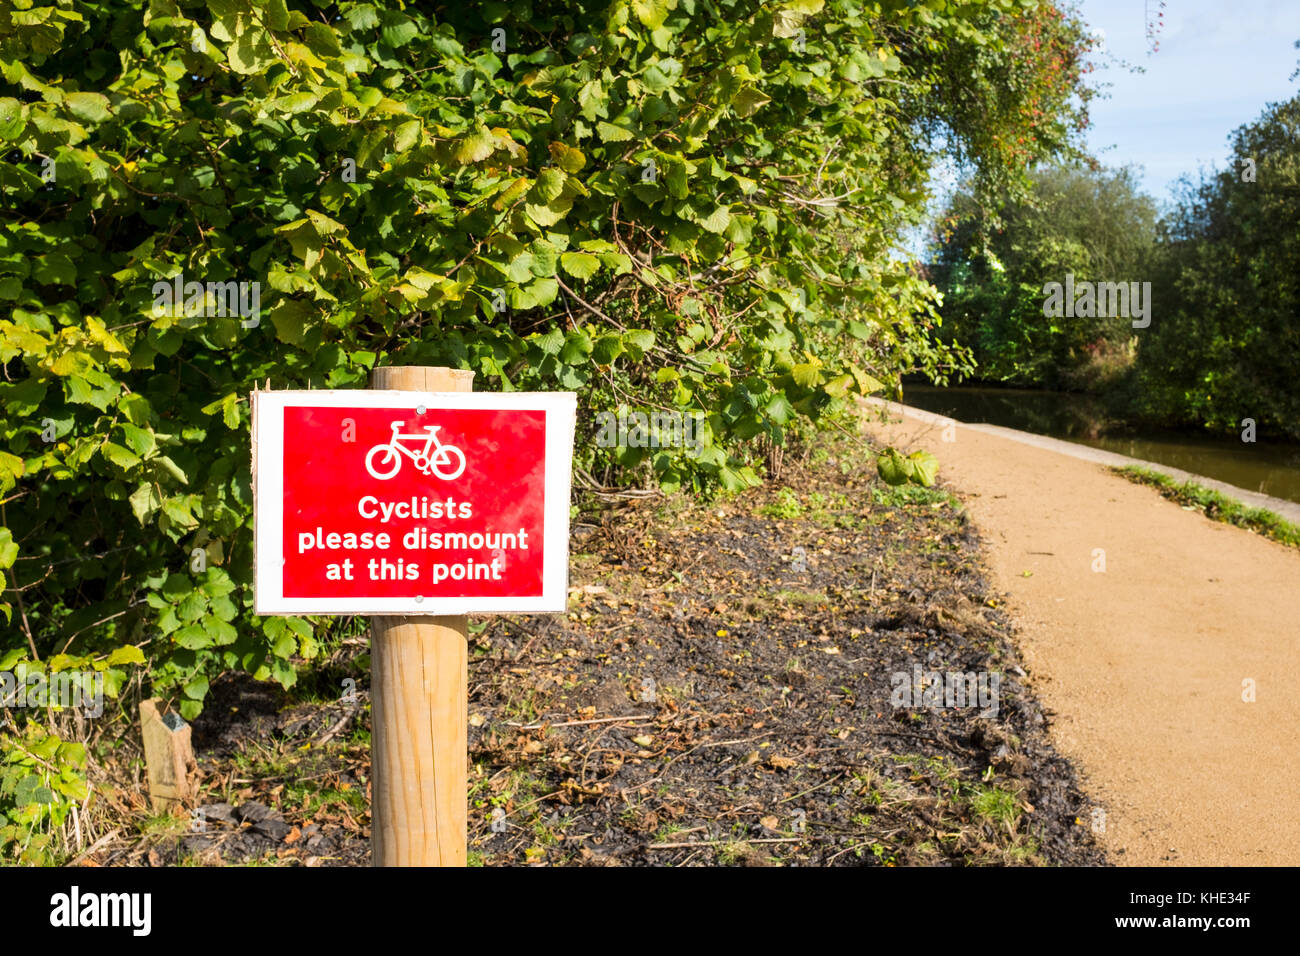 Cyclists please dismount at this point sign on towpath, Trent and Mersey Canal in Cheshire UK - Stock Image